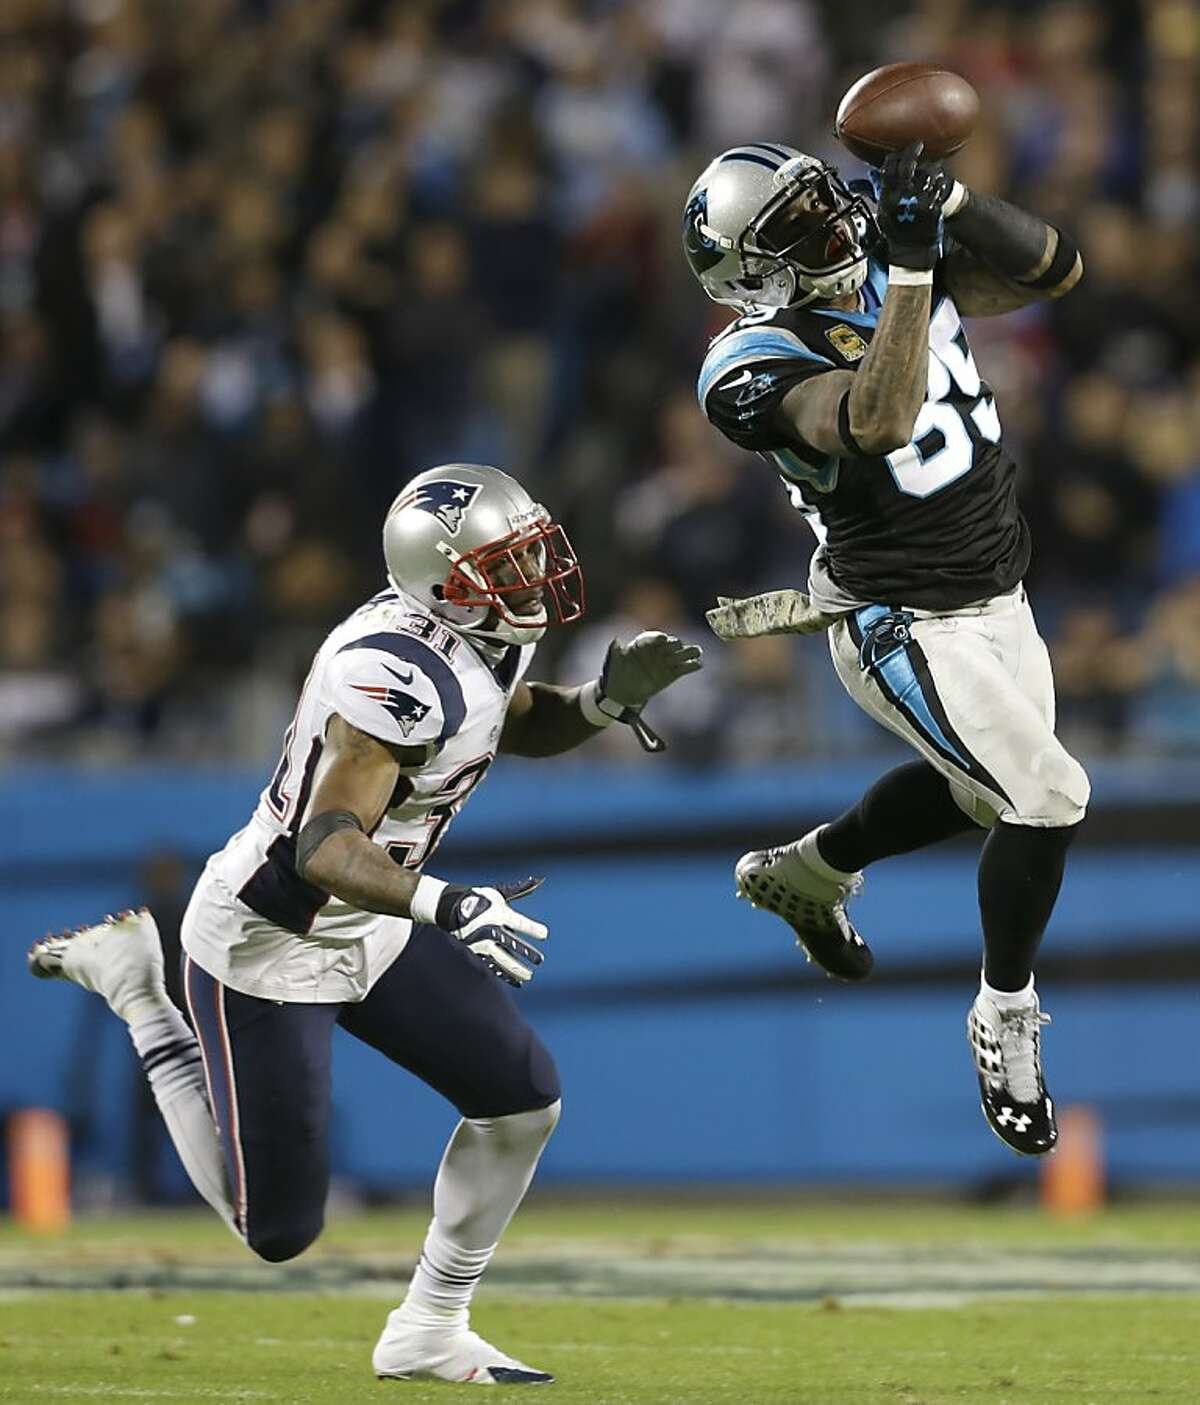 Carolina Panthers' Steve Smith (89) catches a pass as New England Patriots' Aqib Talib (31) defends during the first half of an NFL football game in Charlotte, N.C., Monday, Nov. 18, 2013.